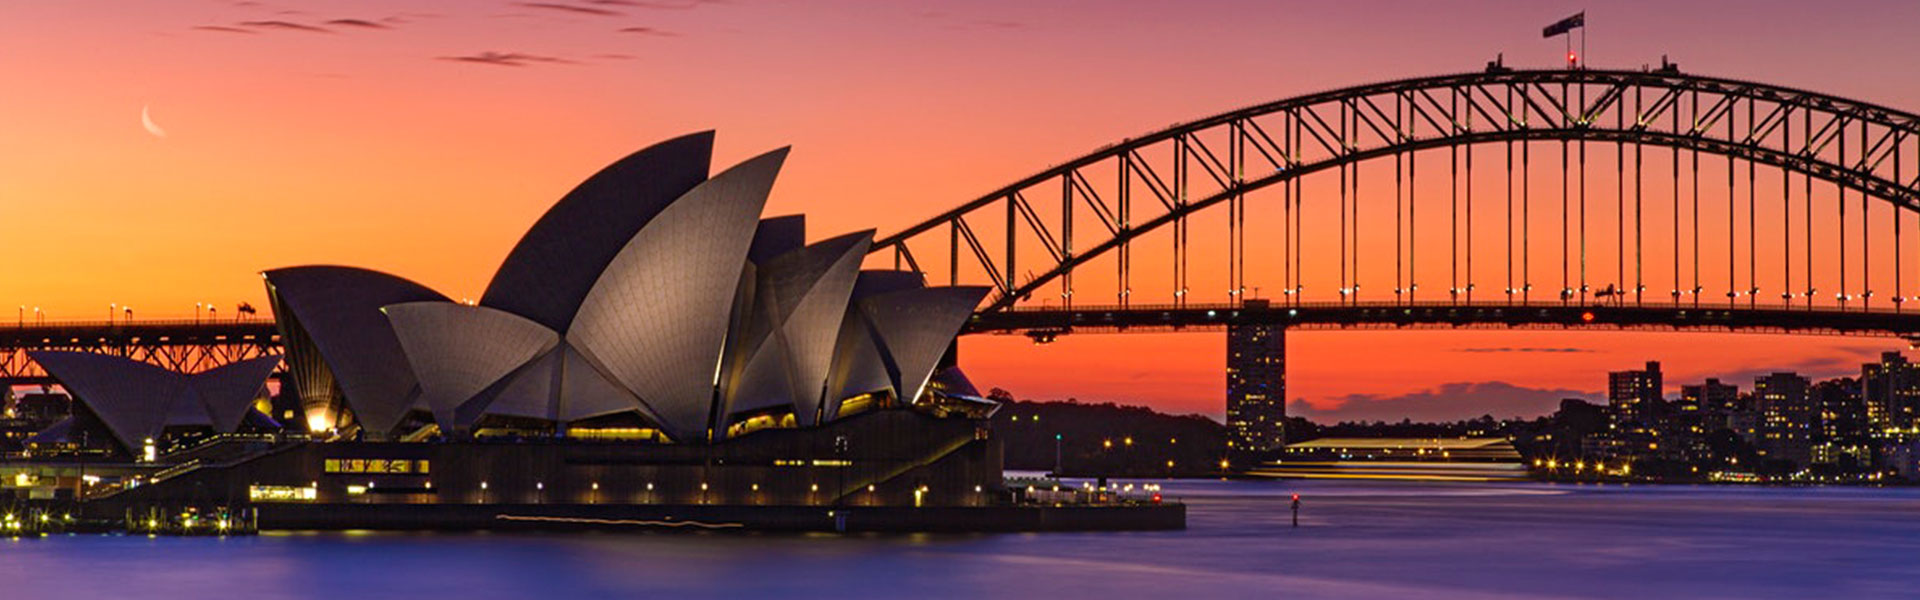 Experience The Lights Of Lively Sydney With This Exclusive Australia Tour